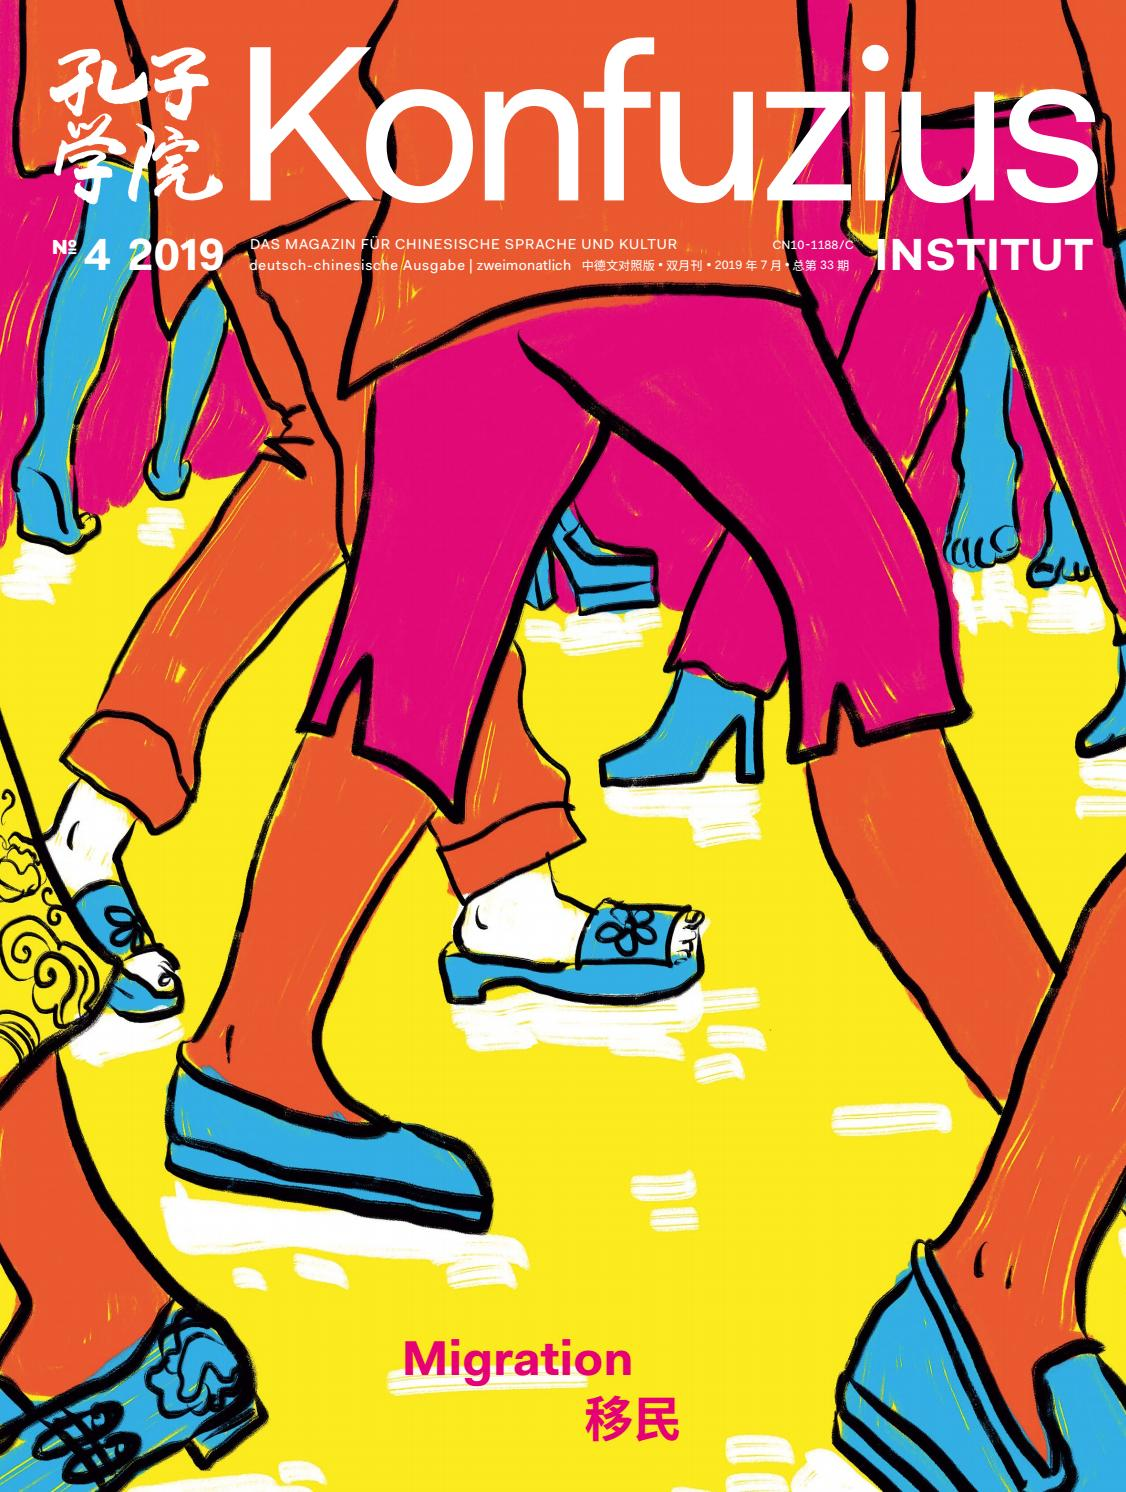 August 2019 Migration 33 By Magazin Konfuzius Institut